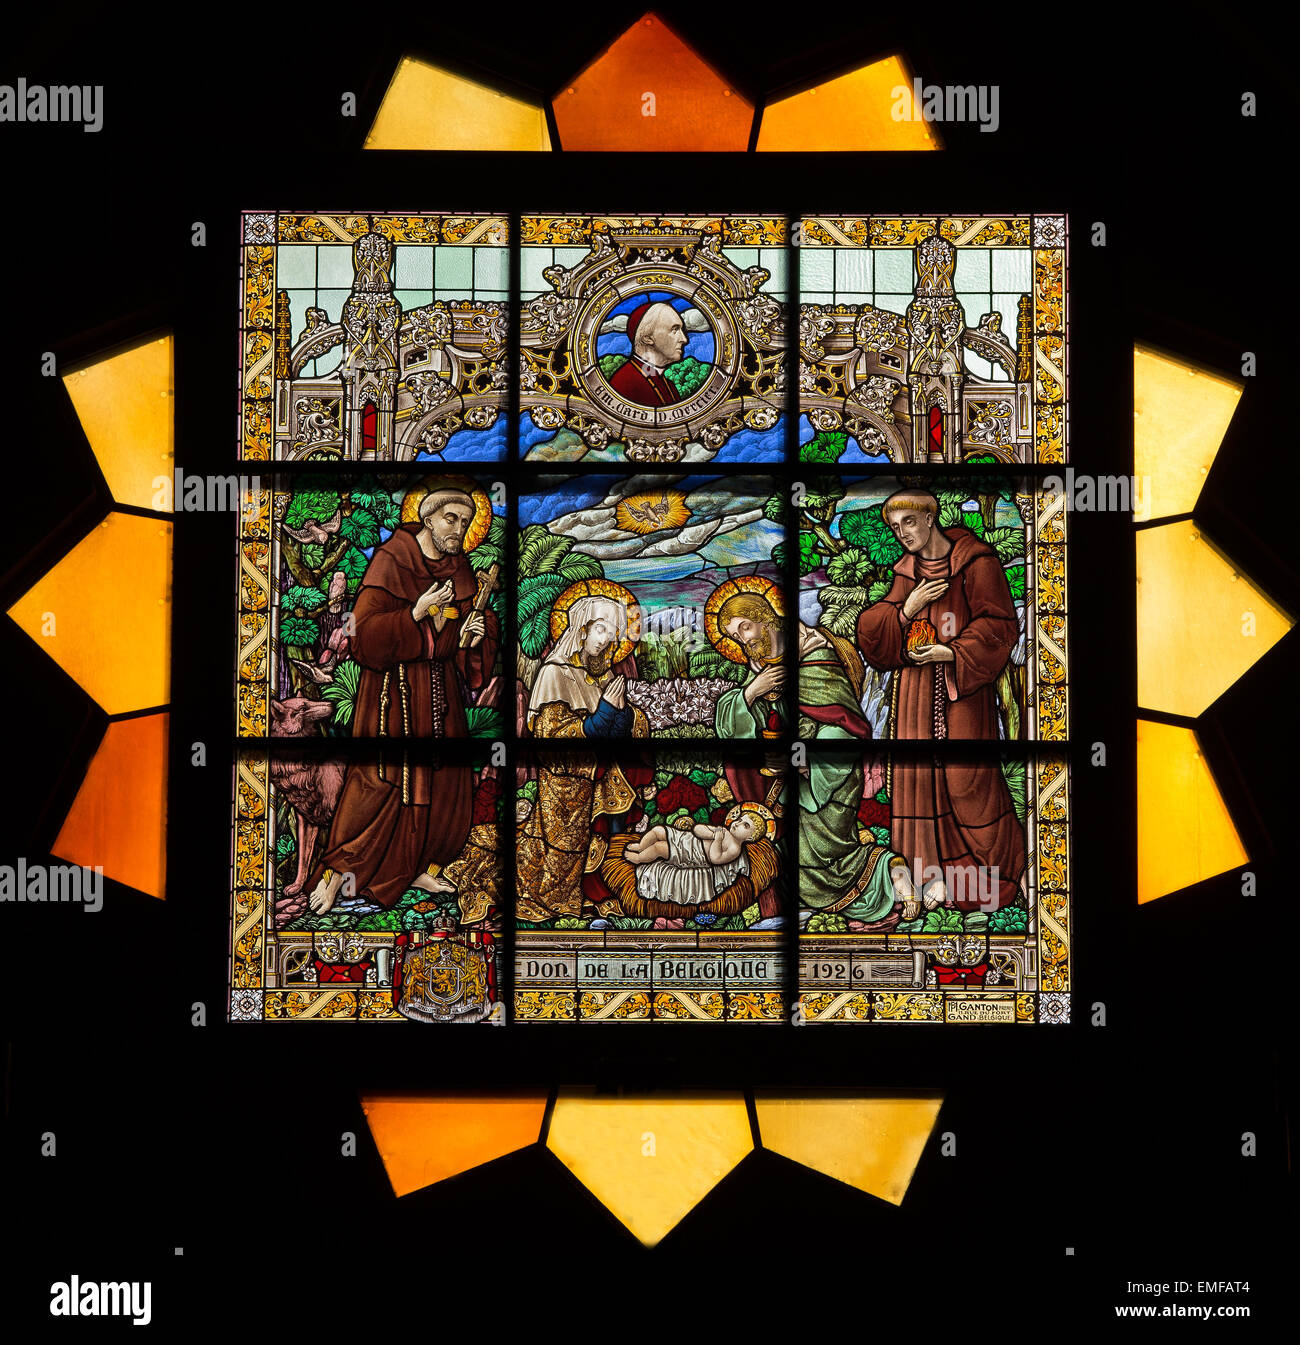 JERUSALEM, ISRAEL - MARCH 5 , 2015: The Nativty scene on the rosette in sanctuary of st. Catharine church Stock Photo